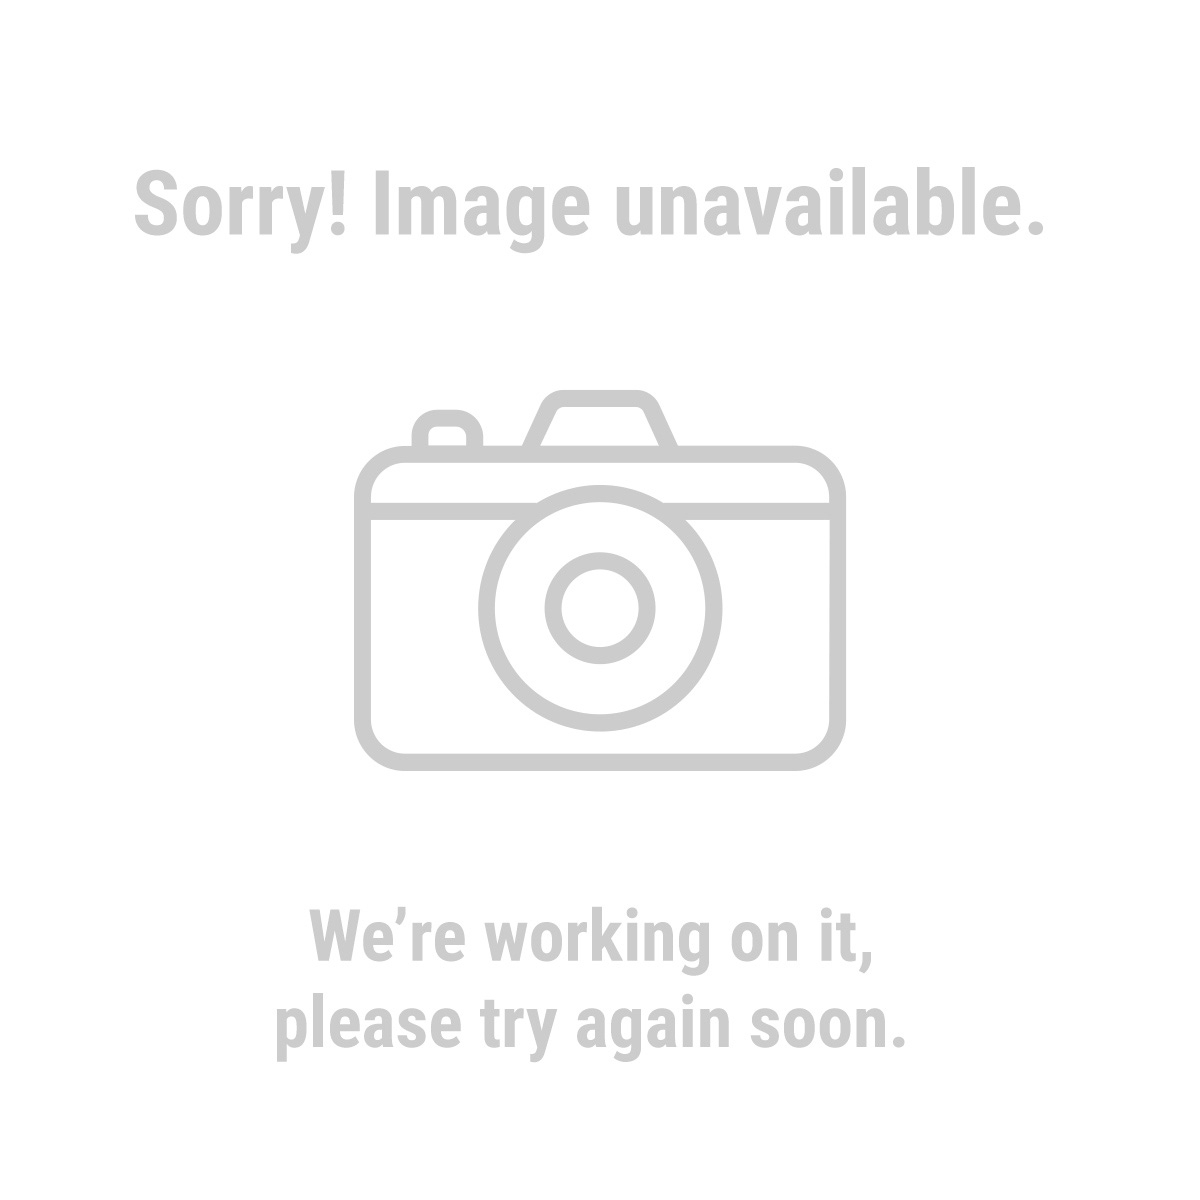 Pittsburgh® 69056 500 Ft. Construction Line, Orange